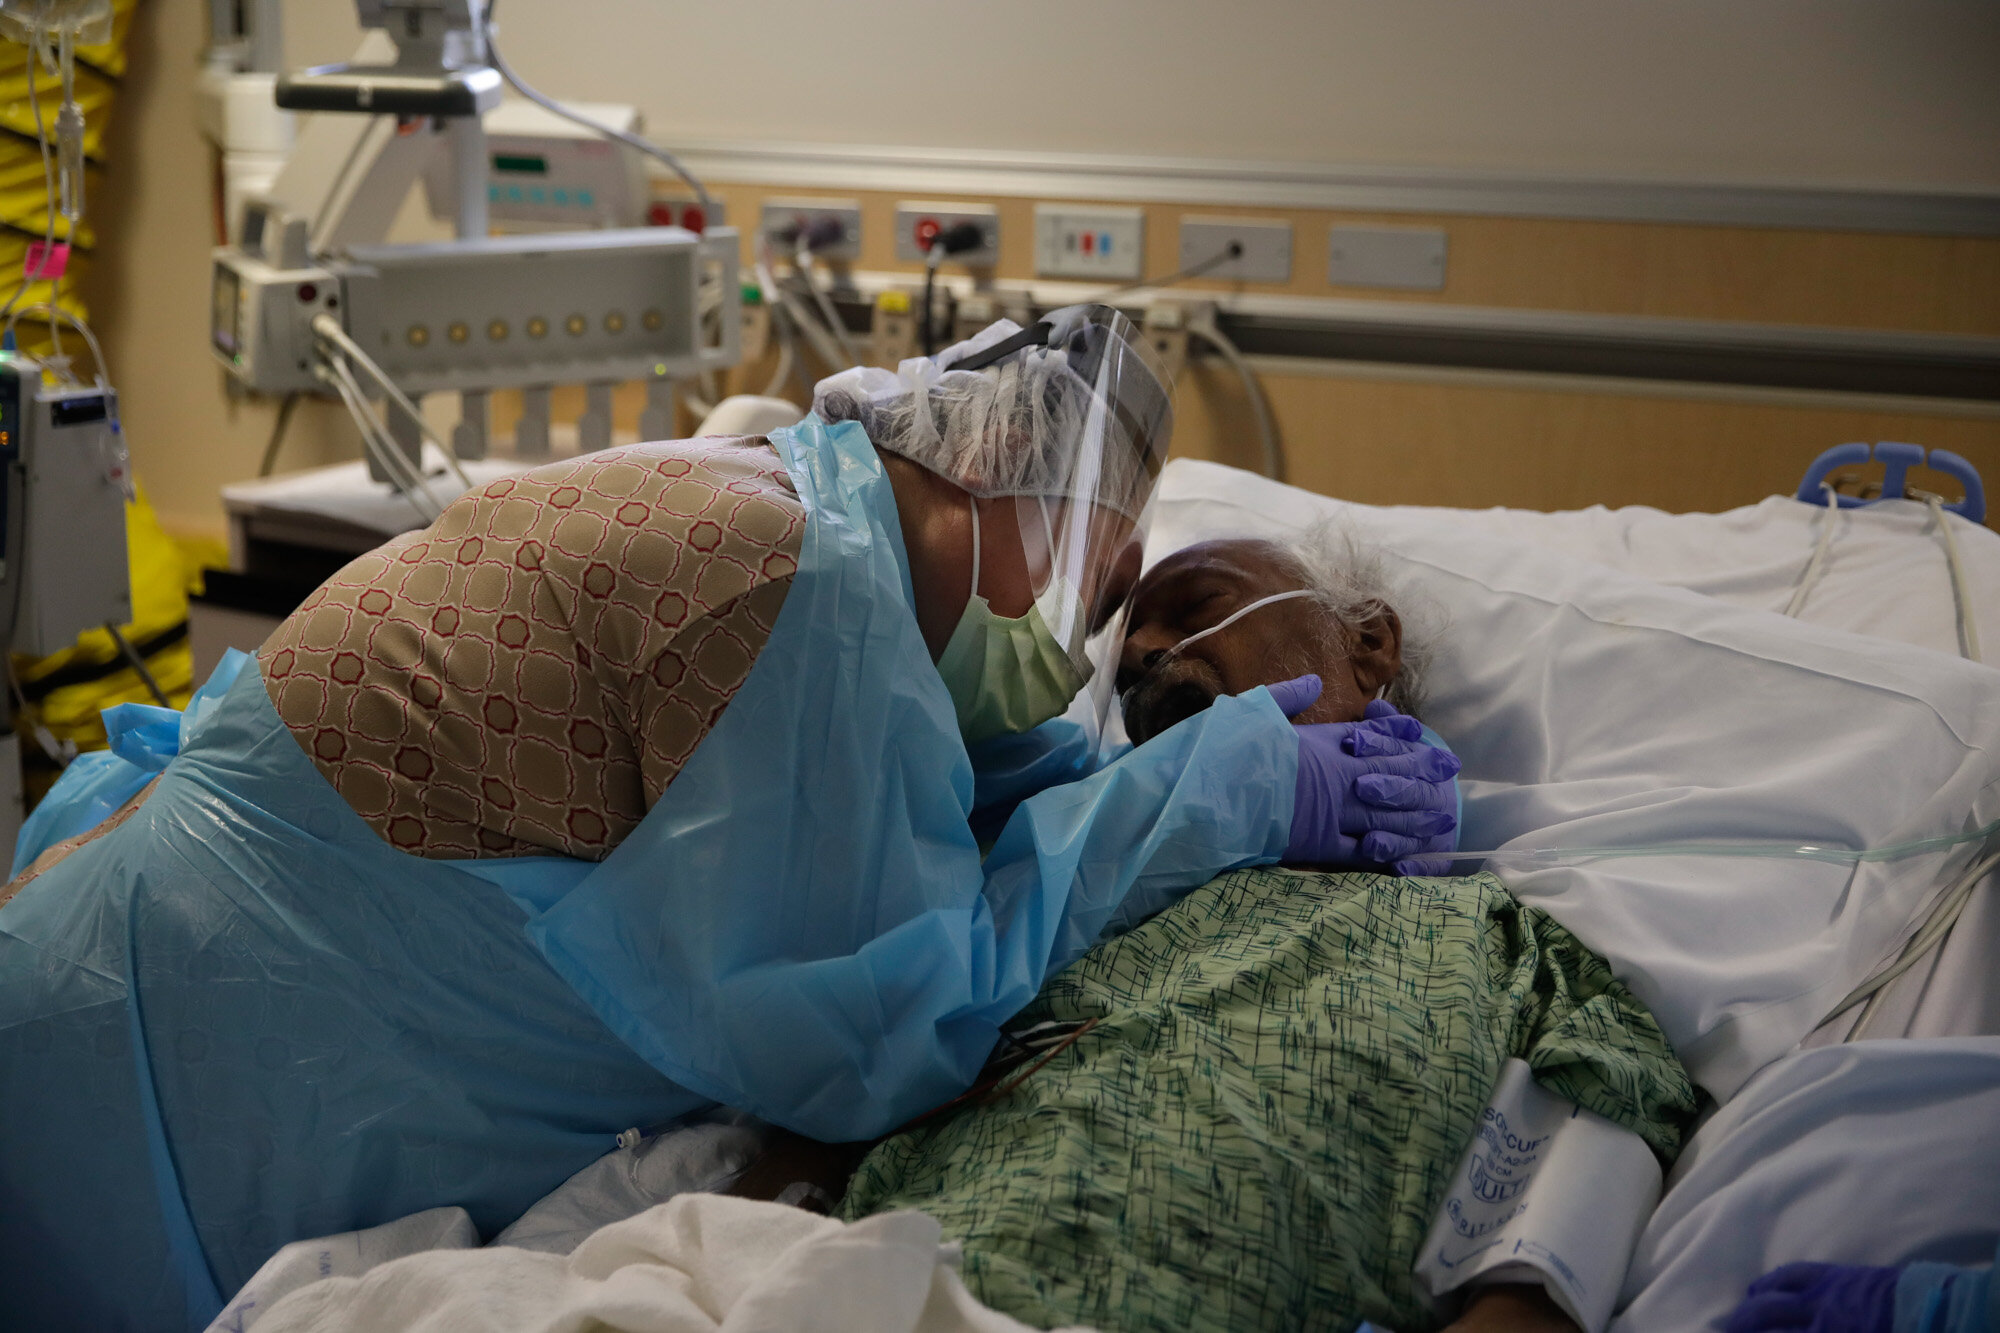 Romelia Navarro, 64, weeps while hugging her husband, Antonio, in his final moments in a COVID-19 unit at St. Jude Medical Center in Fullerton, Calif., on July 31, 2020. (AP Photo/Jae C. Hong)